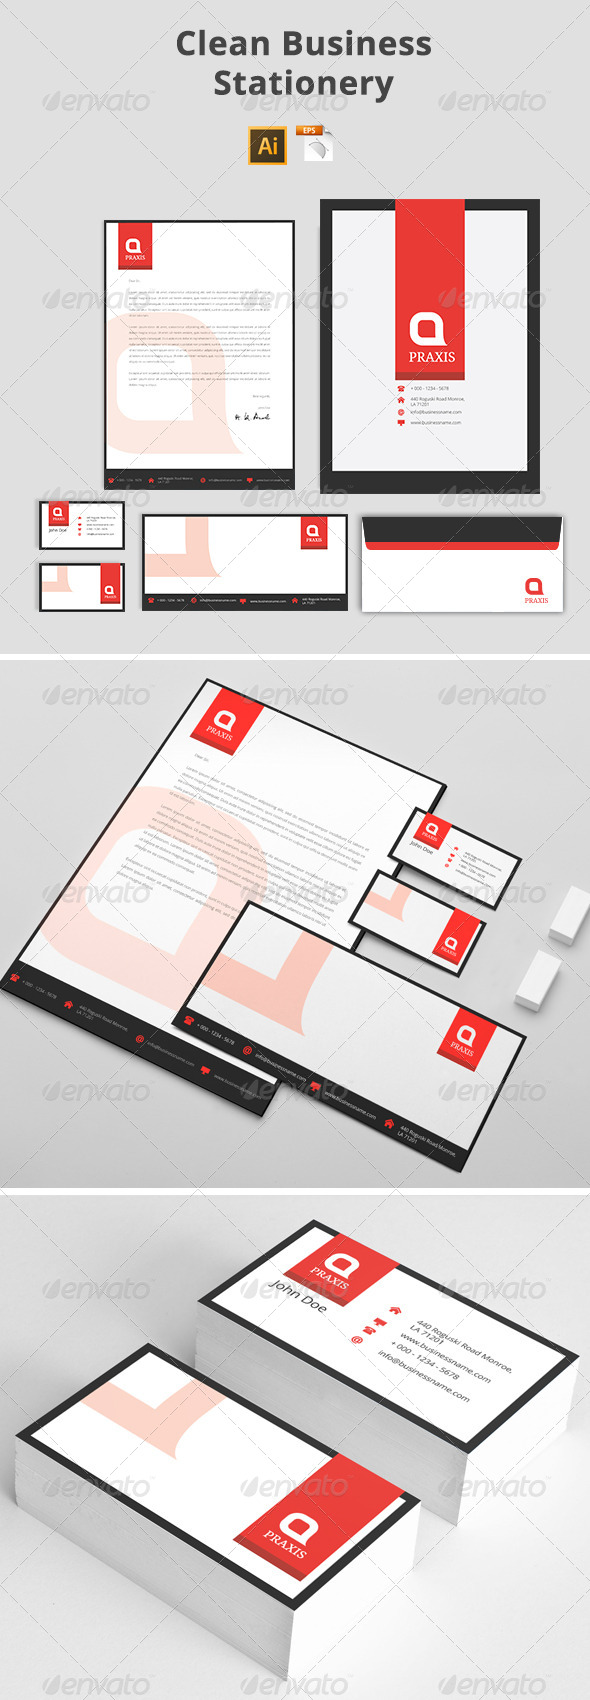 GraphicRiver Clean Business Stationery 7744250